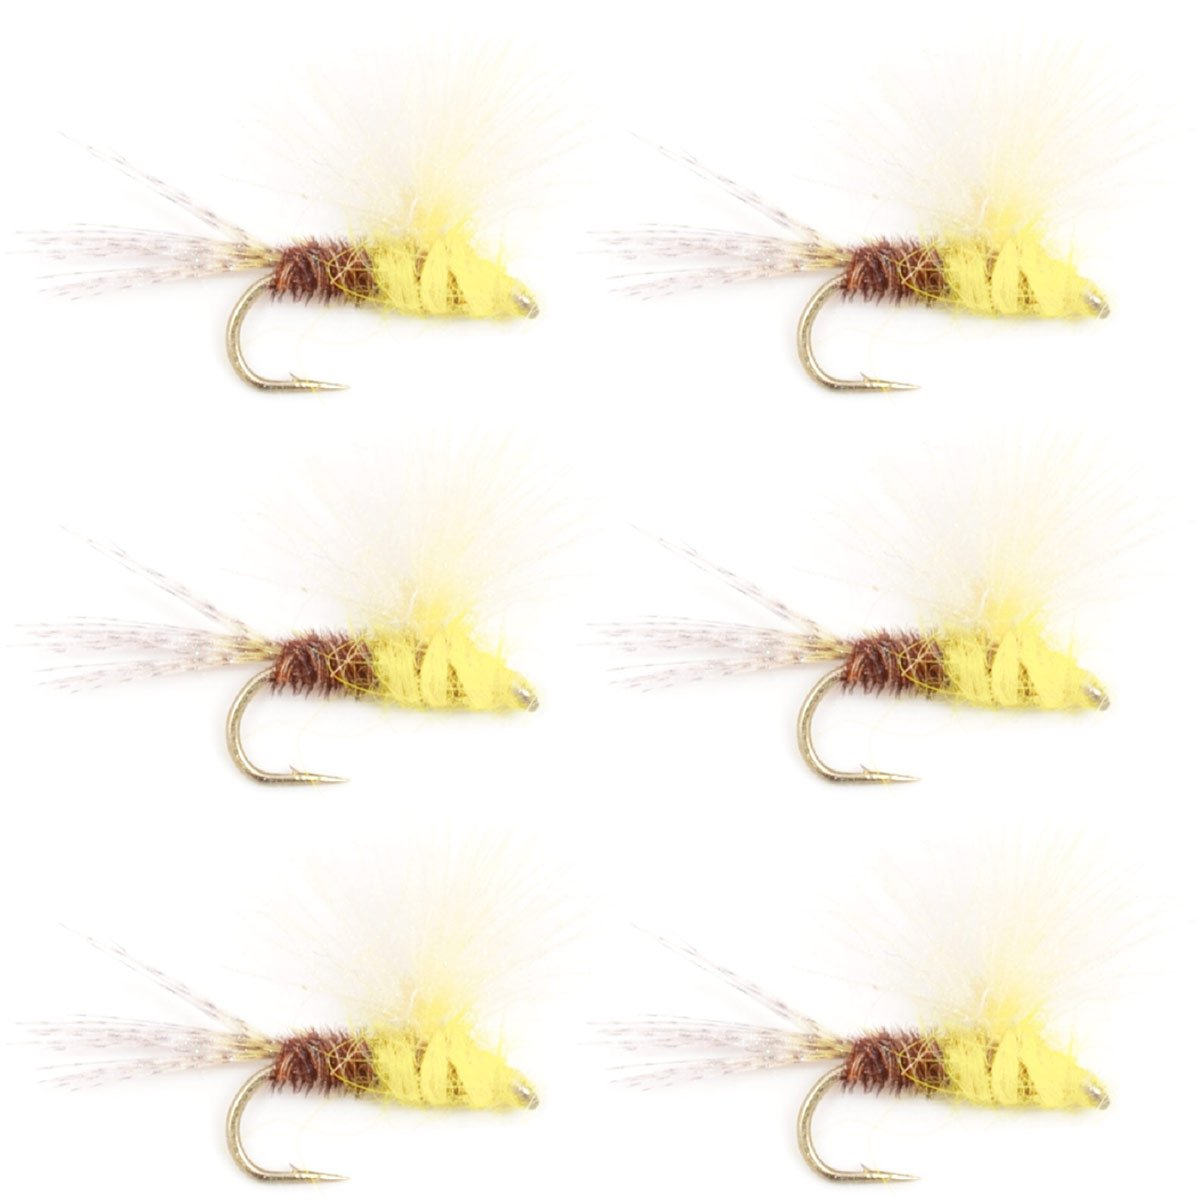 12 Piece Pale Morning Dun PMD Fly Fishing Flies Collection Free Fly Box